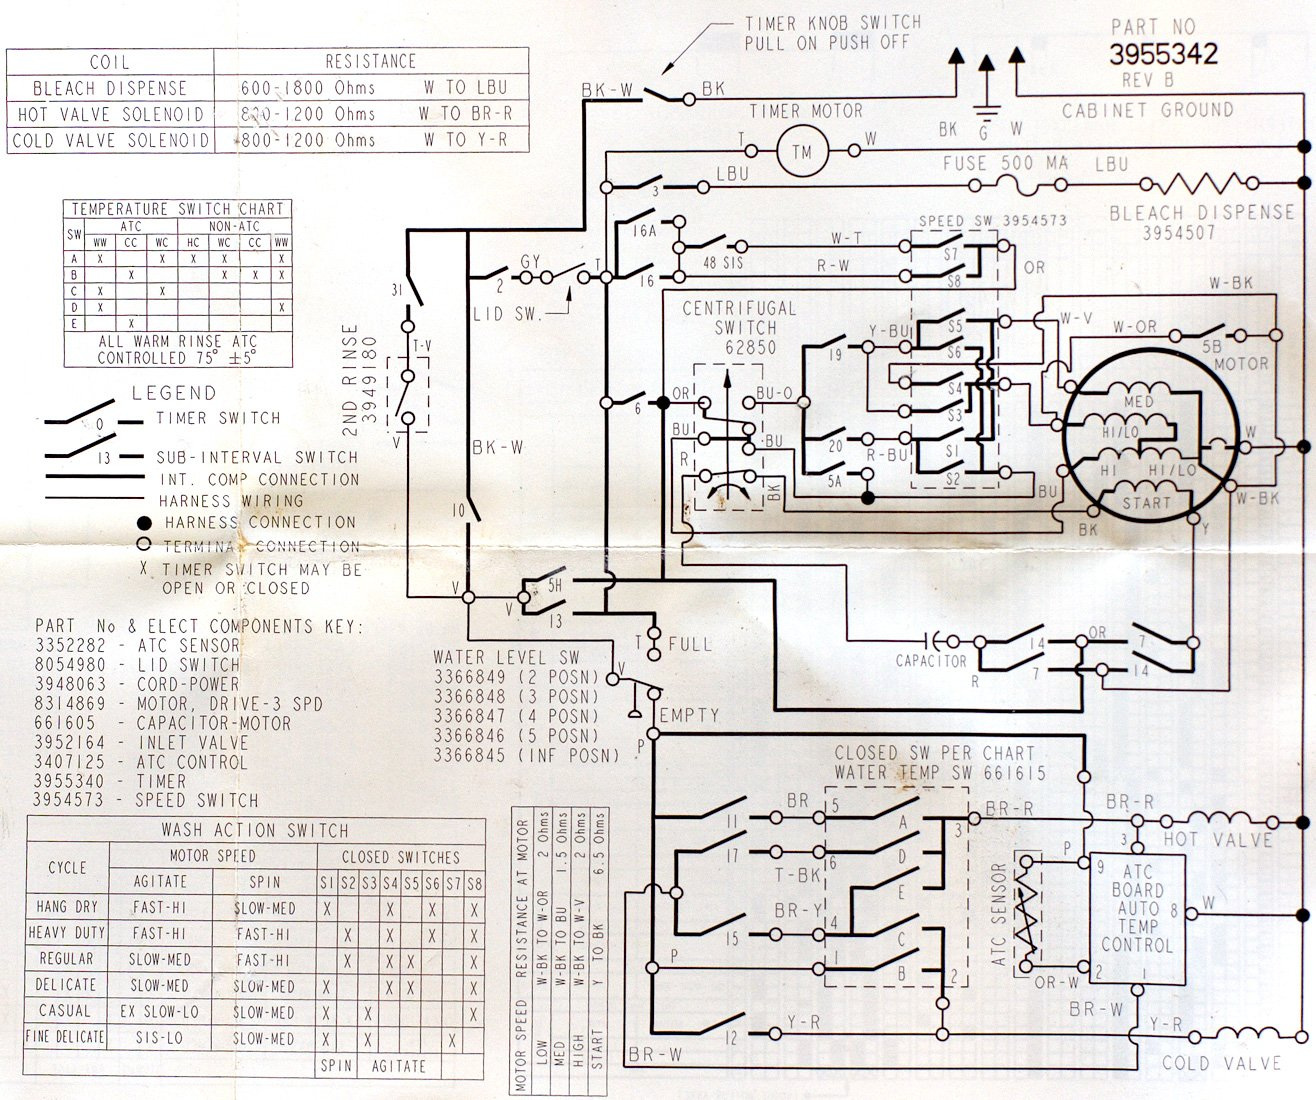 I have a 3 sd motor out of a Kenmore washing machine. I have a ... Kenmore Laundry Timer Wiring Diagram on eaton wiring diagrams, whirlpool wiring diagrams, hobart wiring diagrams, gibson wiring diagrams, westinghouse wiring diagrams, frigidaire wiring diagrams, viking wiring diagrams, craftsman wiring diagrams, hotpoint wiring diagrams, ge wiring diagrams, buckley wiring diagrams, maytag wiring diagrams, sears wiring diagrams, dacor wiring diagrams, lg wiring diagrams, speed queen wiring diagrams, panasonic wiring diagrams, amana wiring diagrams, samsung wiring diagrams, kitchenaid wiring diagrams,